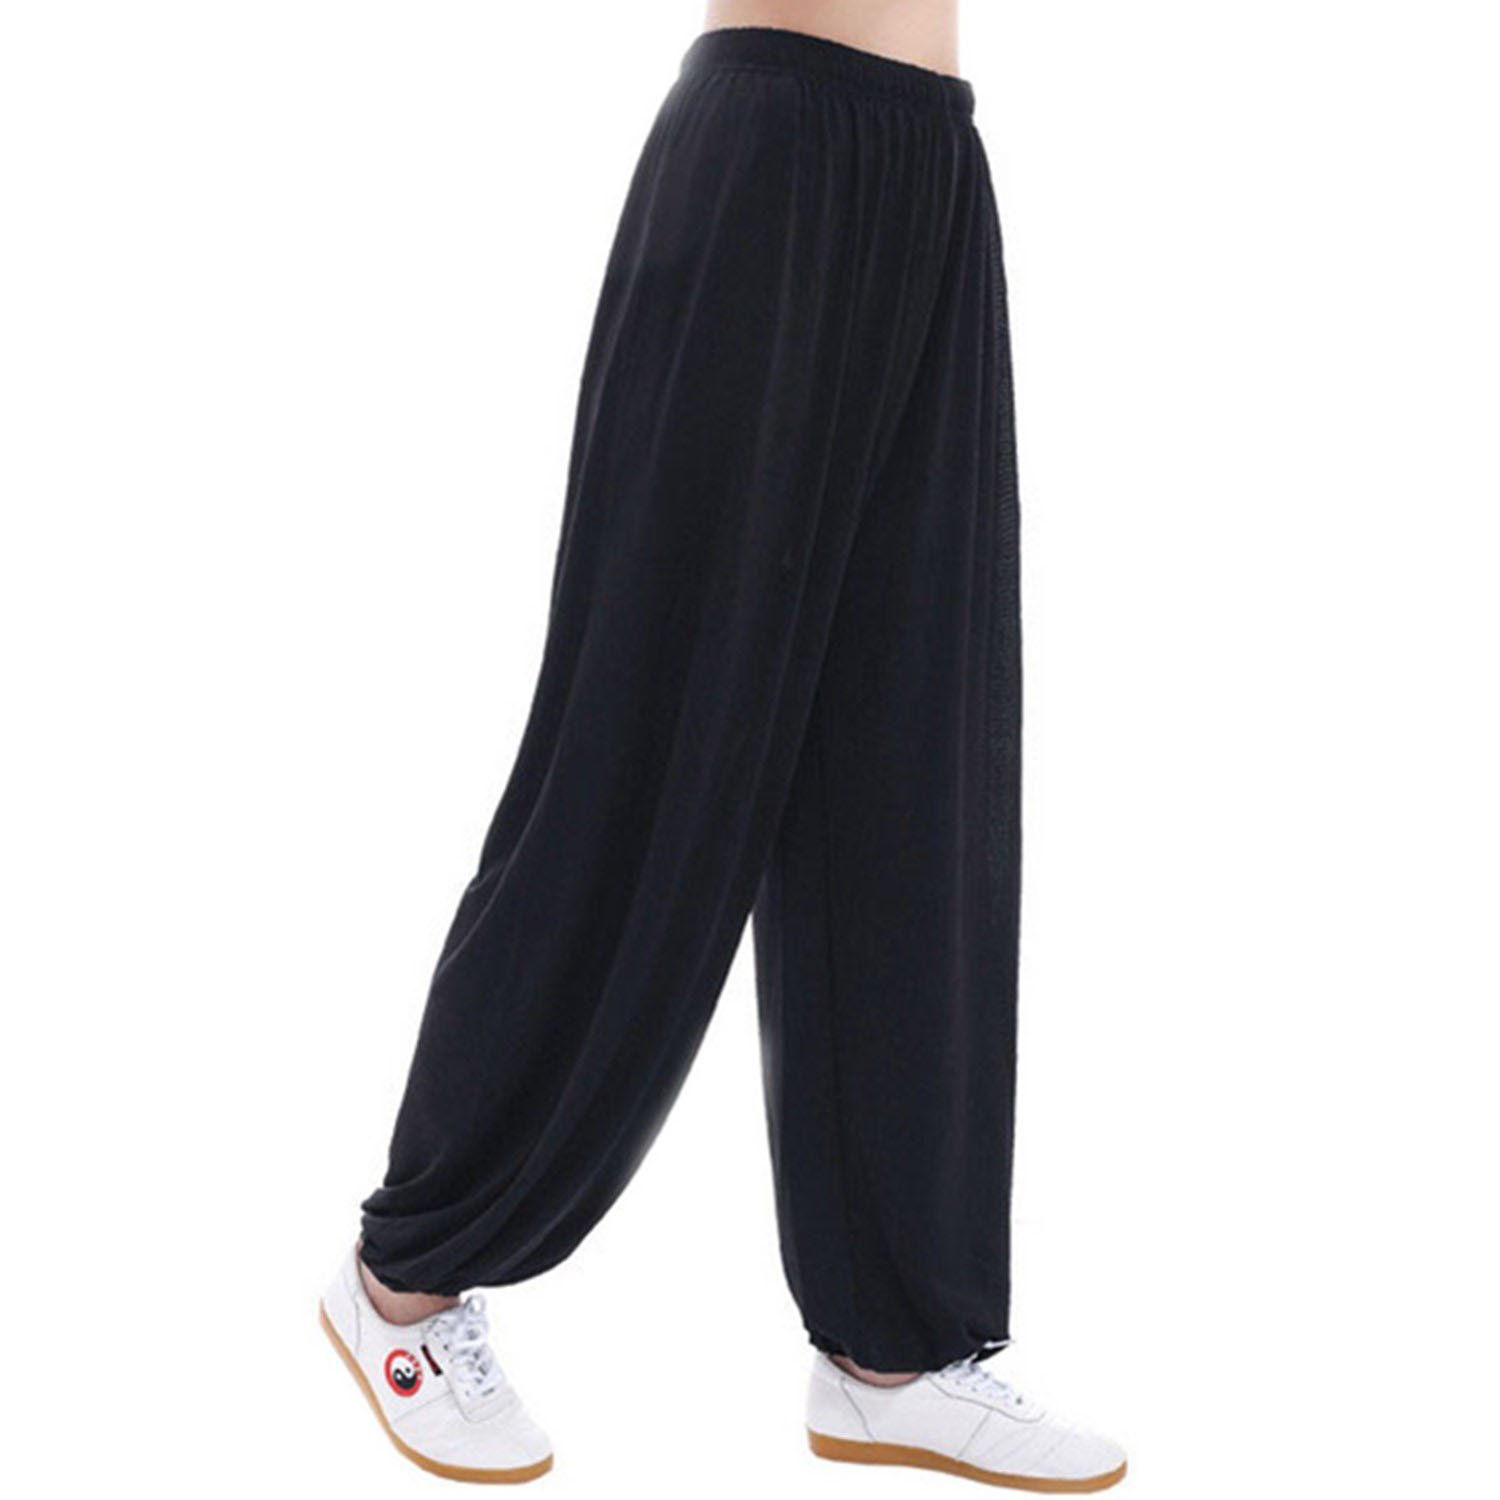 44876c6acf106 Women Plus Size Super Soft Harem Pants Modal Yoga Pants Elastic Pilates  Pants at Amazon Women s Clothing store